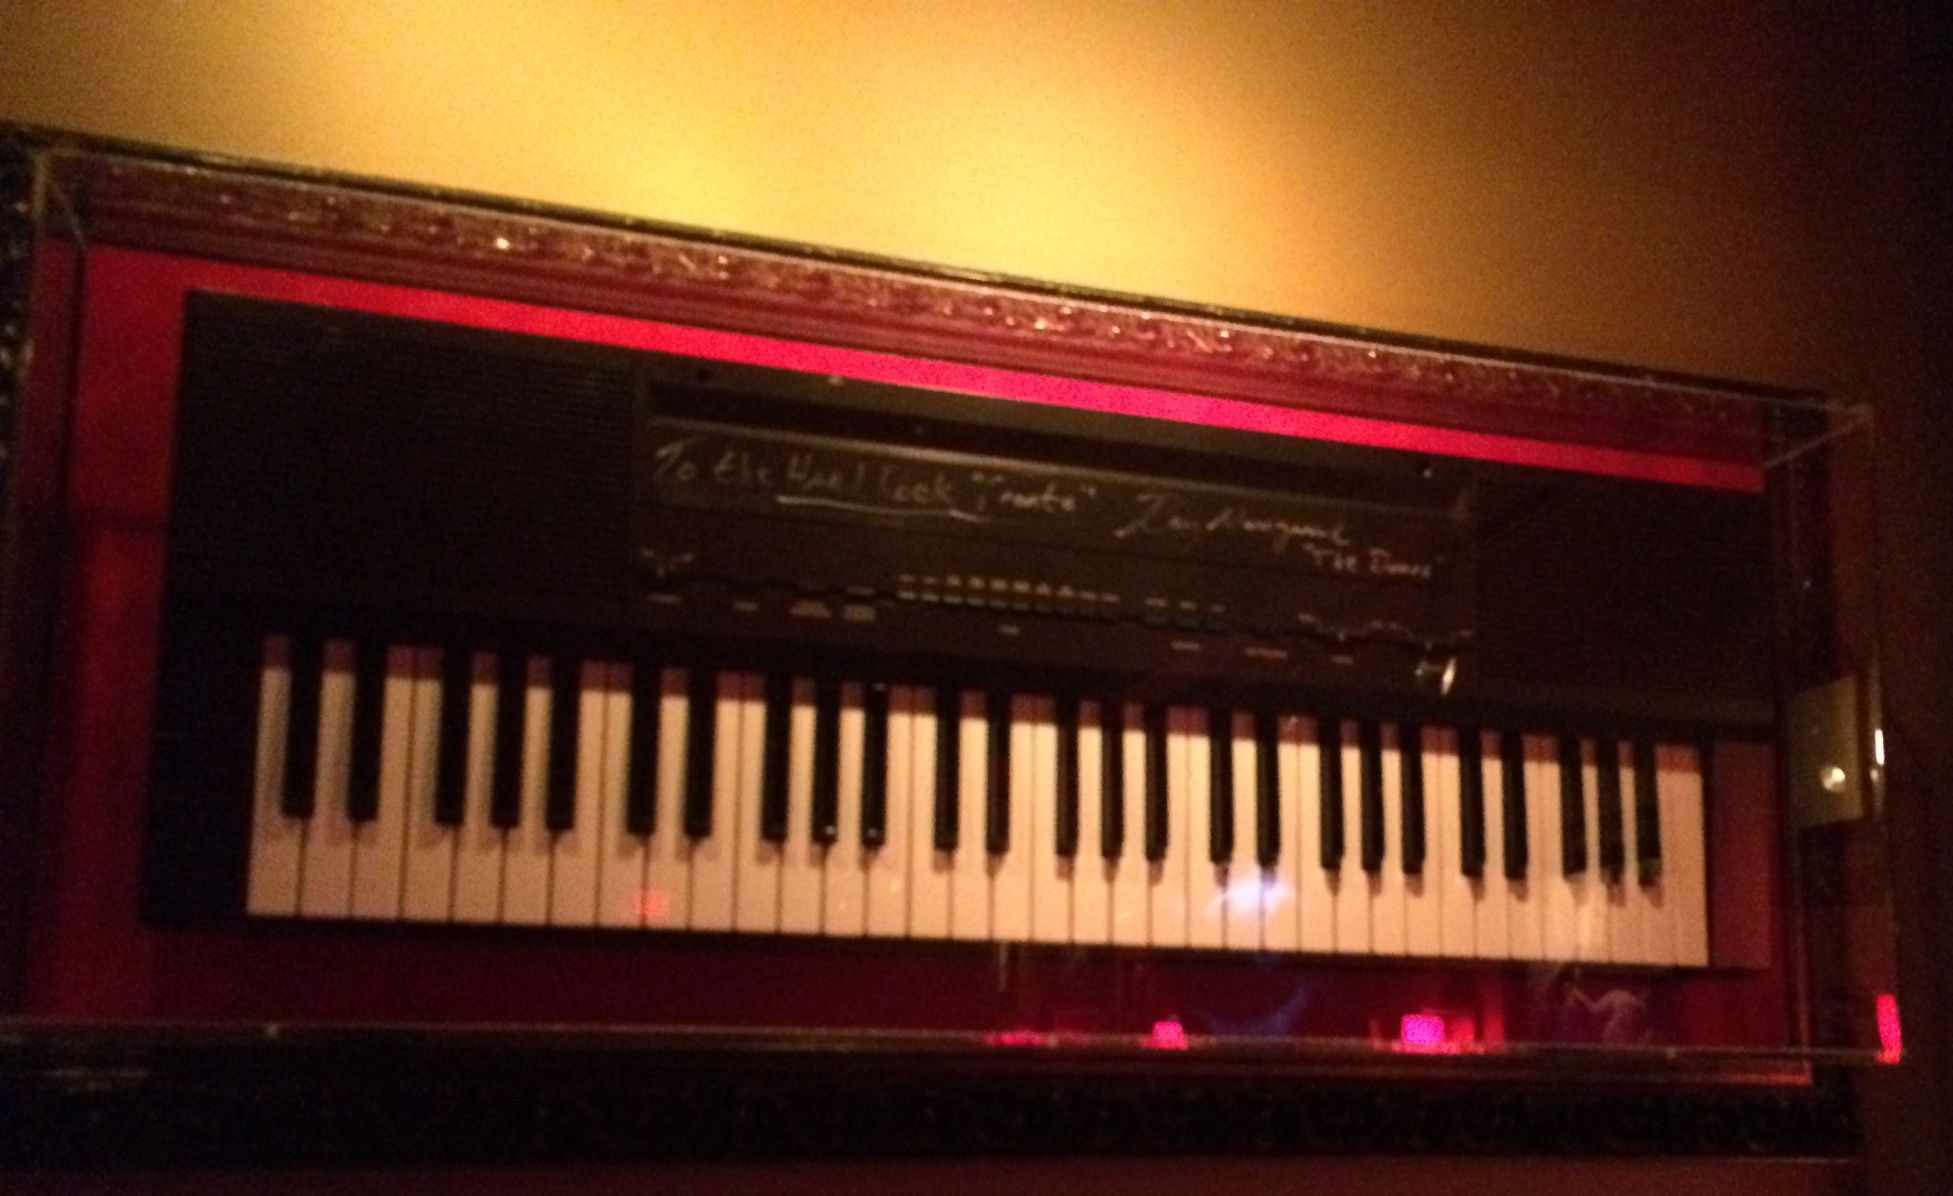 The Doors virtuoso keyboardist Ray Manzarek signed this keyboard at Hard Rock Cafe Toronto. & The Doors virtuoso keyboardist Ray Manzarek signed this keyboard at ...